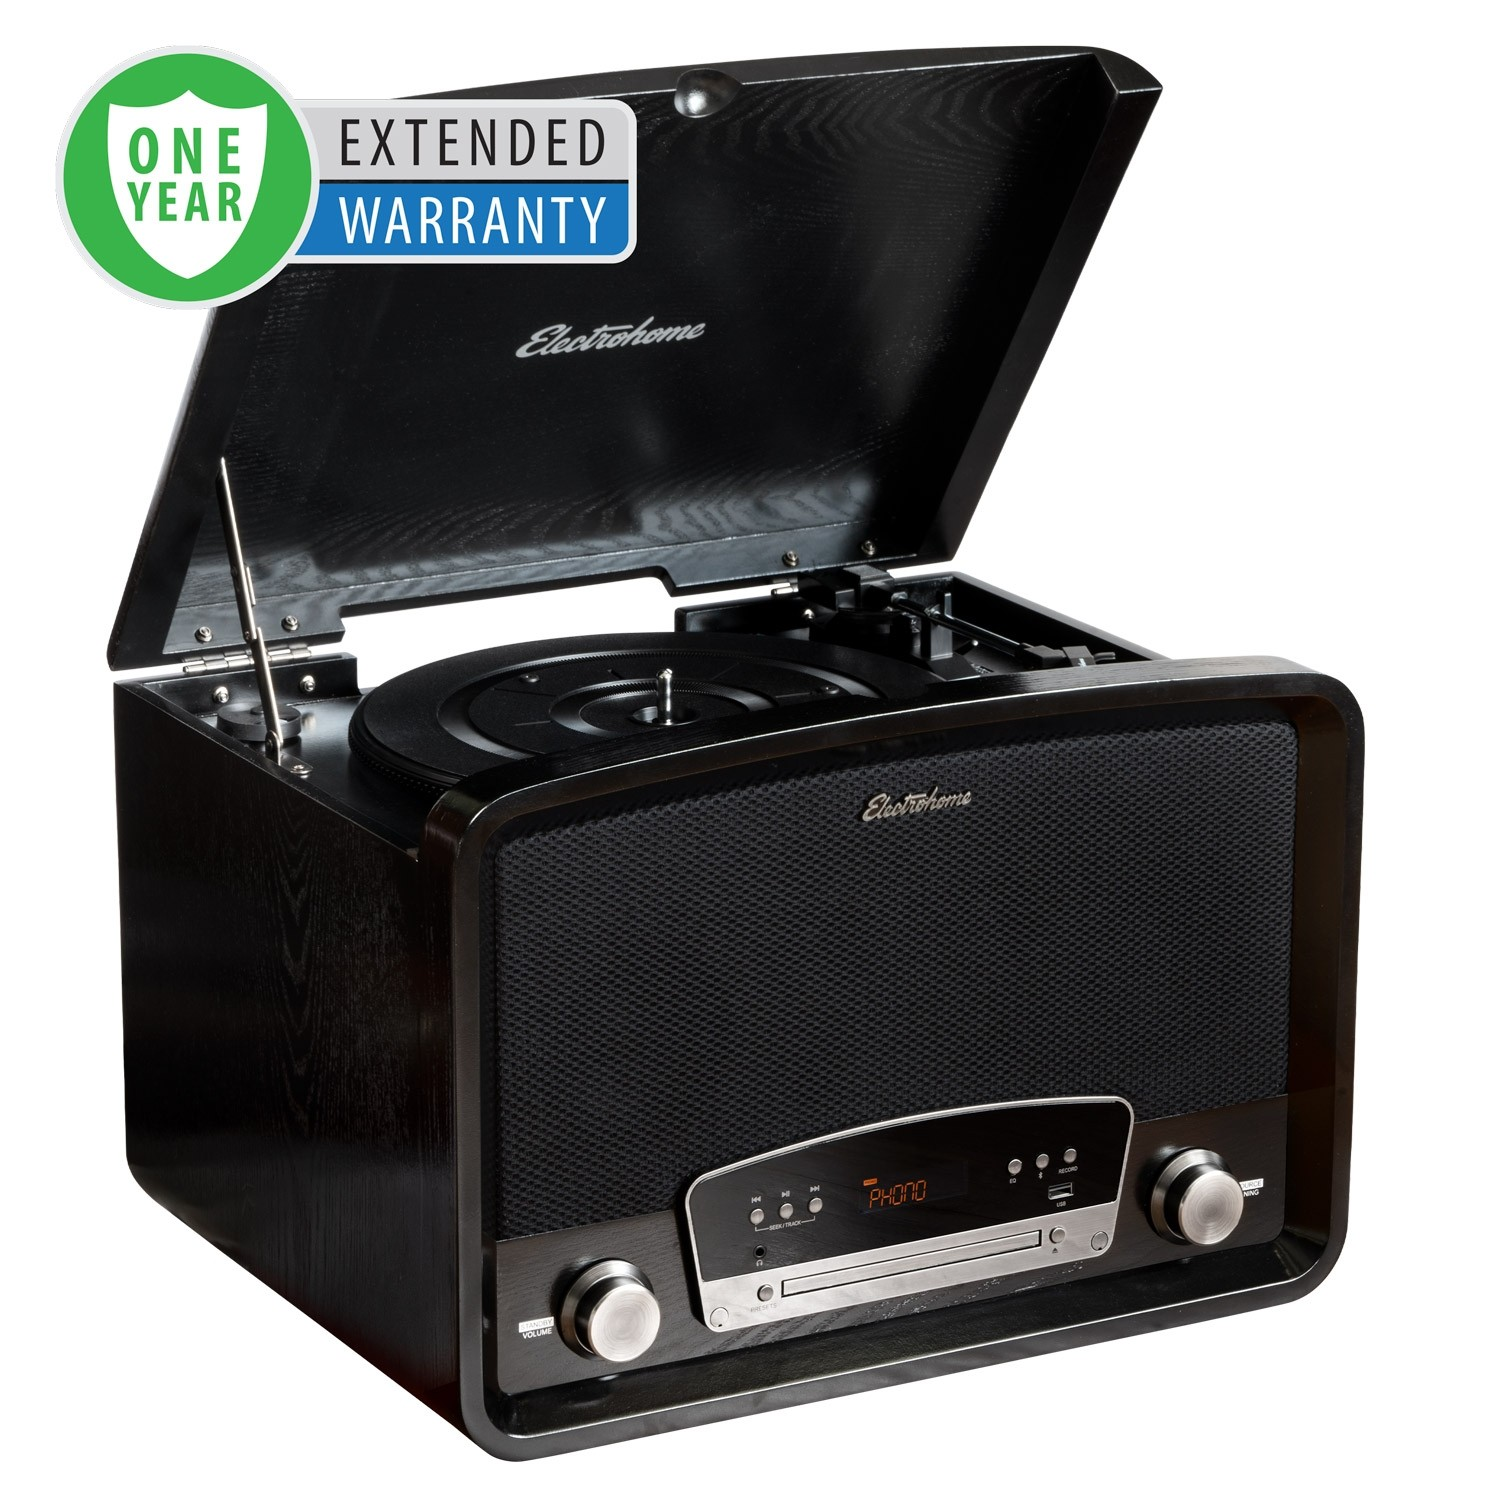 1 Year Extended Warranty for Kingston 7-in-1 Vinyl Record Player - Main Black